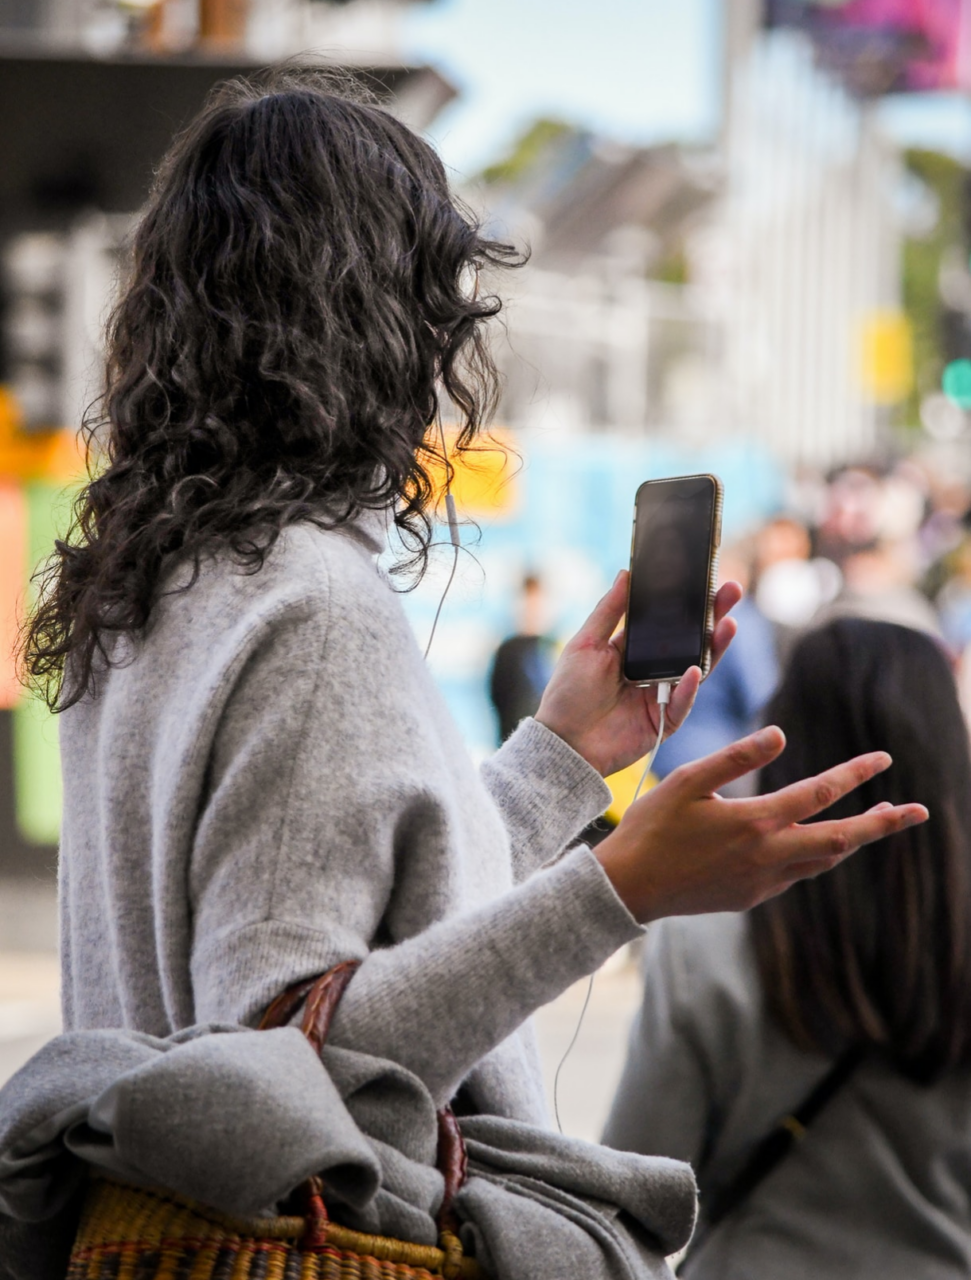 Woman using video call function while walking on the street